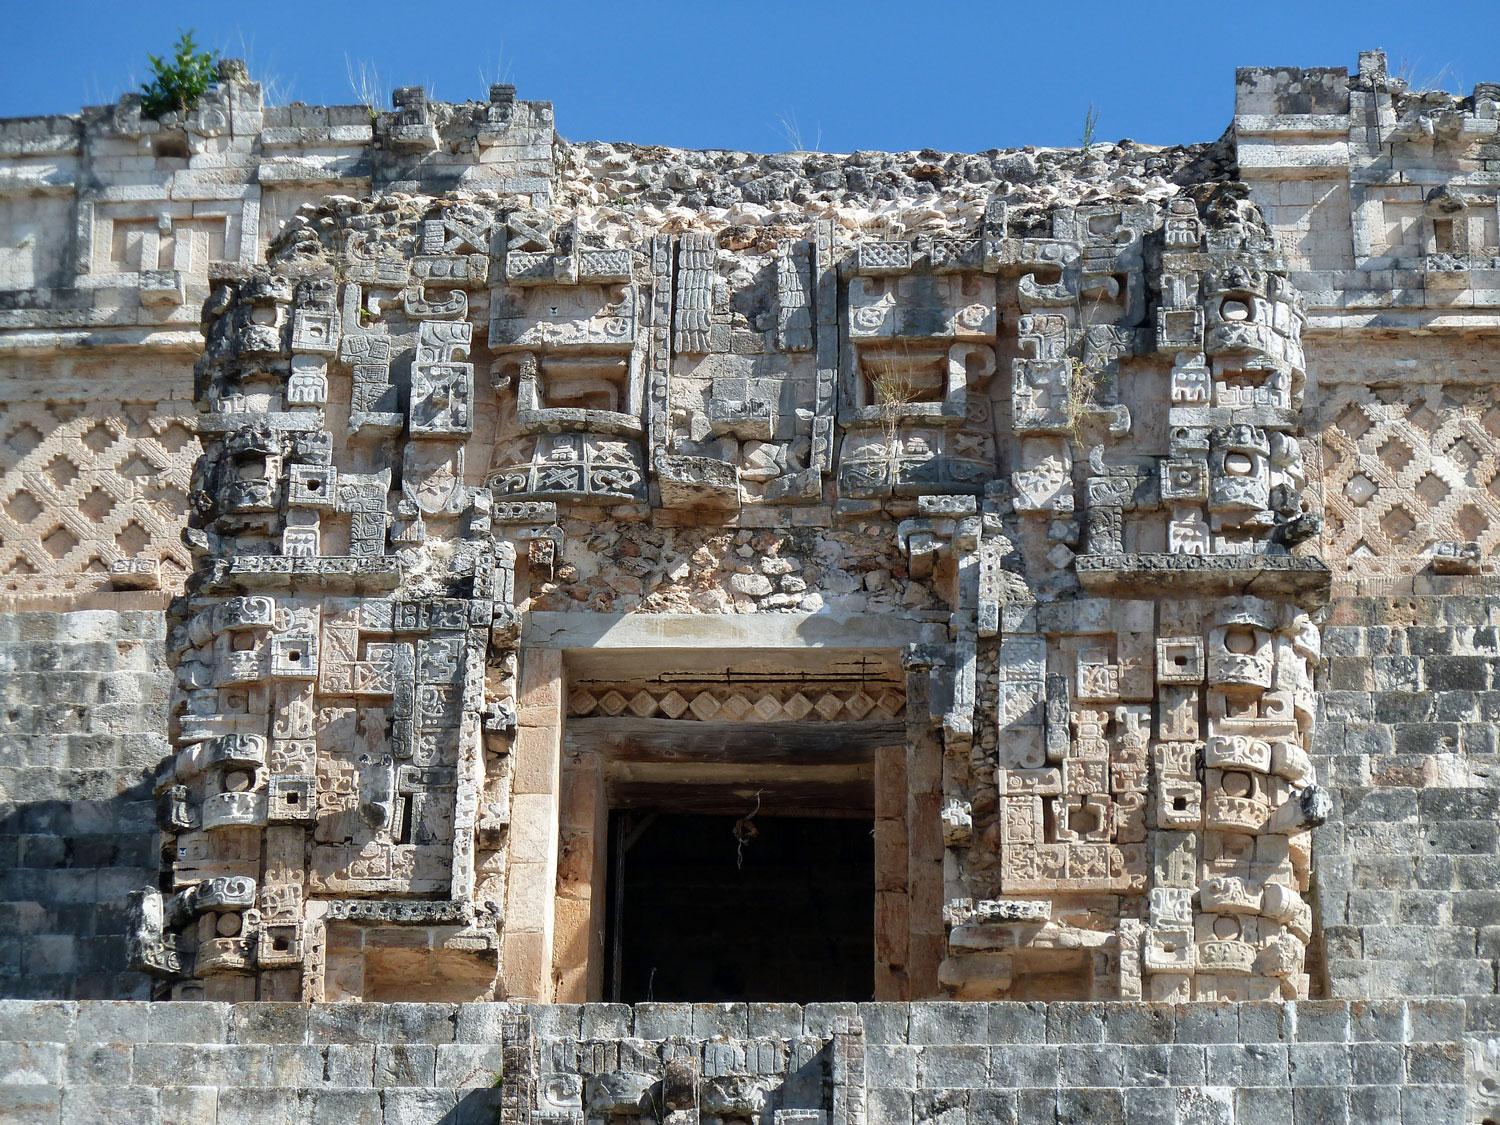 The Witz Monster in Uxmal on the Magician's pyramid.